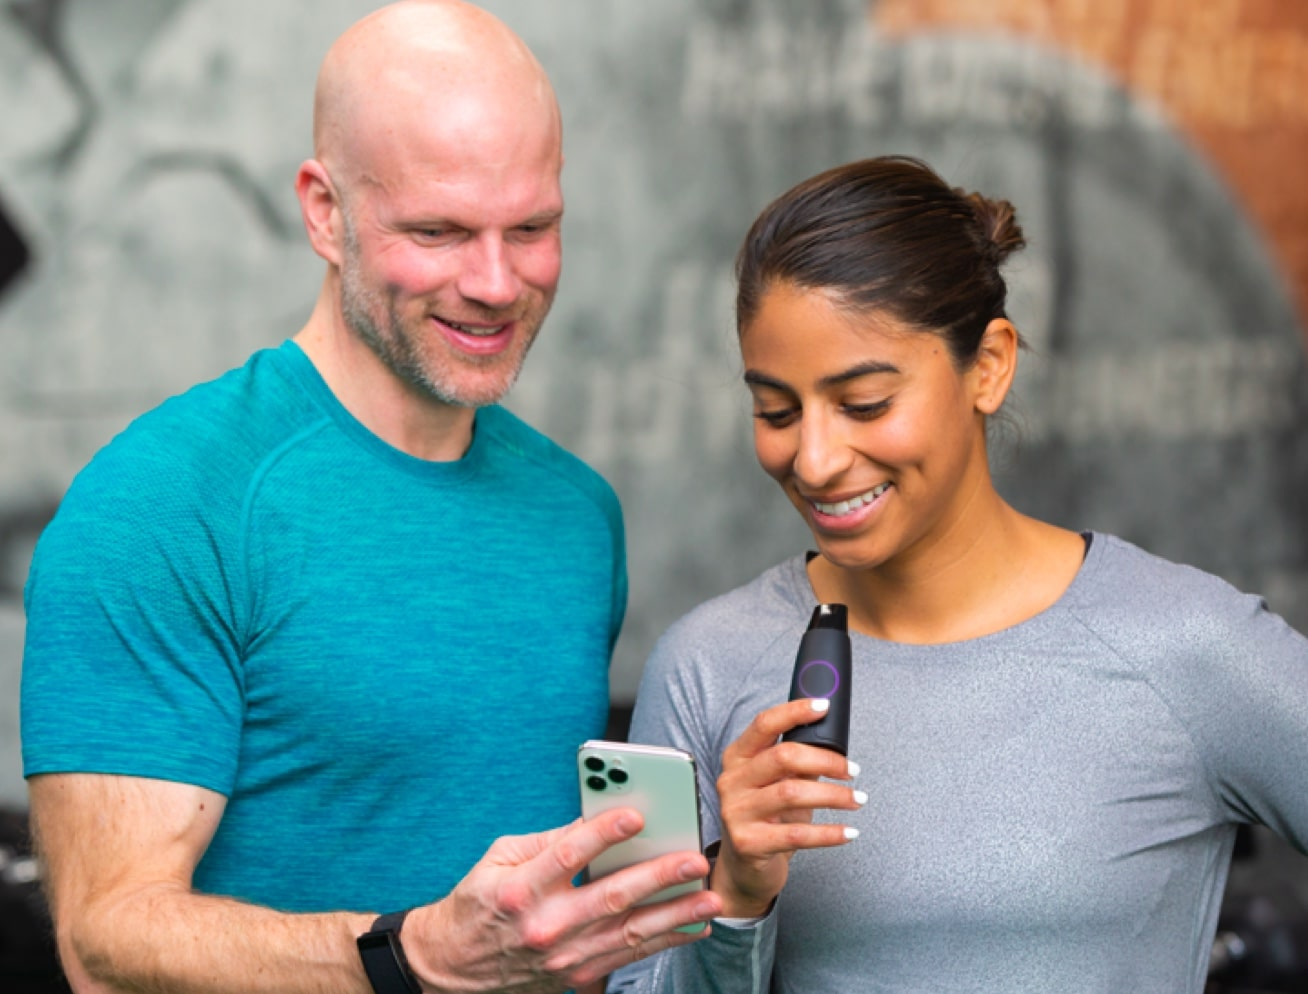 Man and a woman looking at a phone while using a Lumen device.